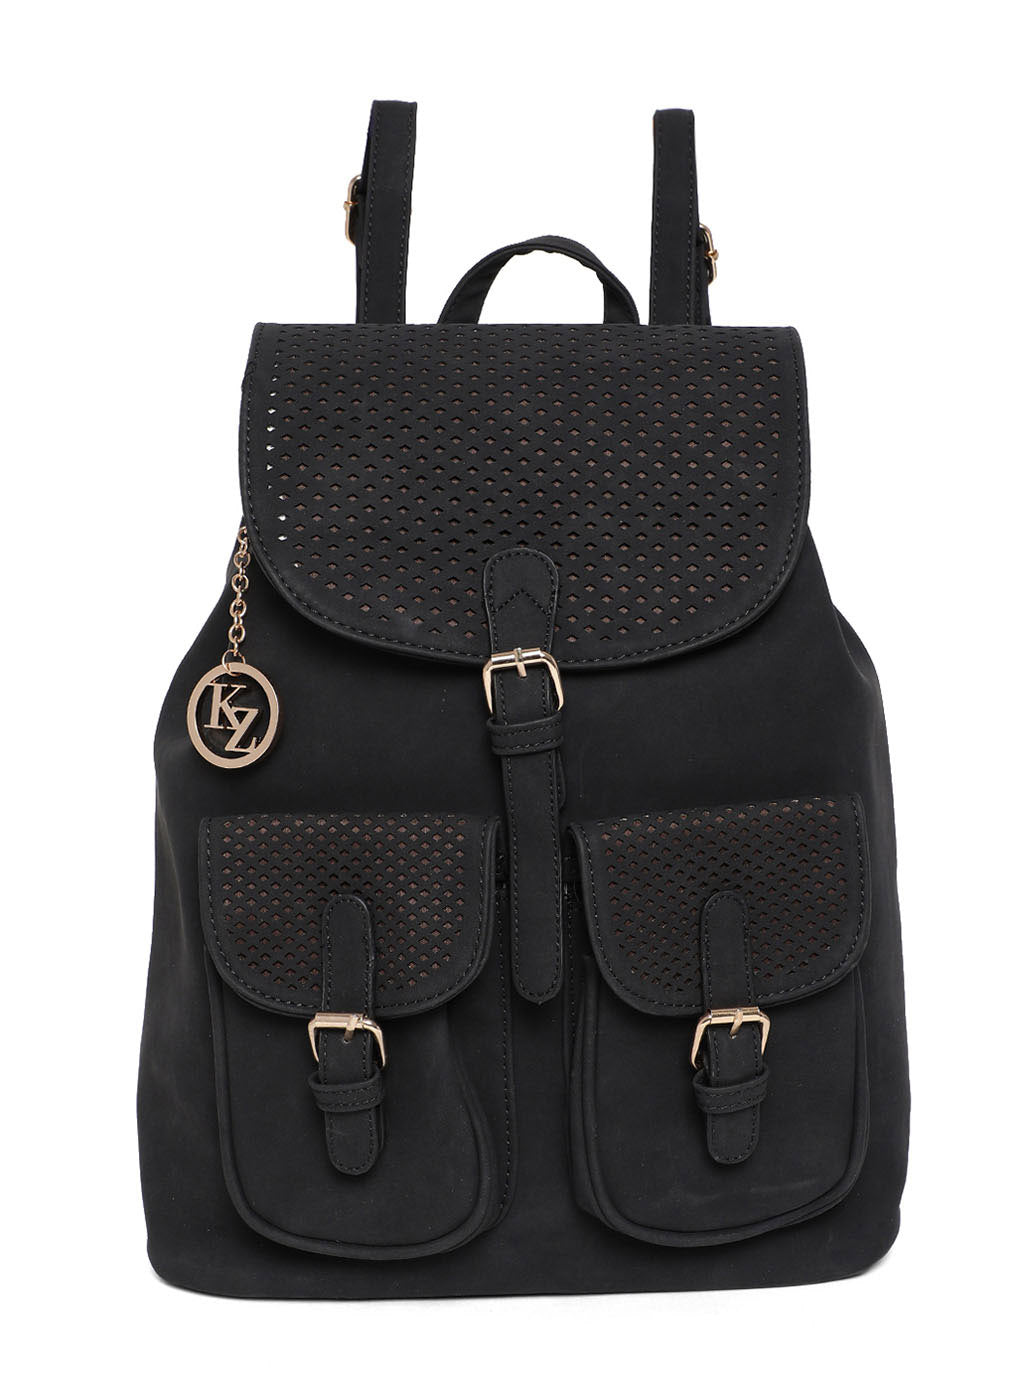 Black Backbag